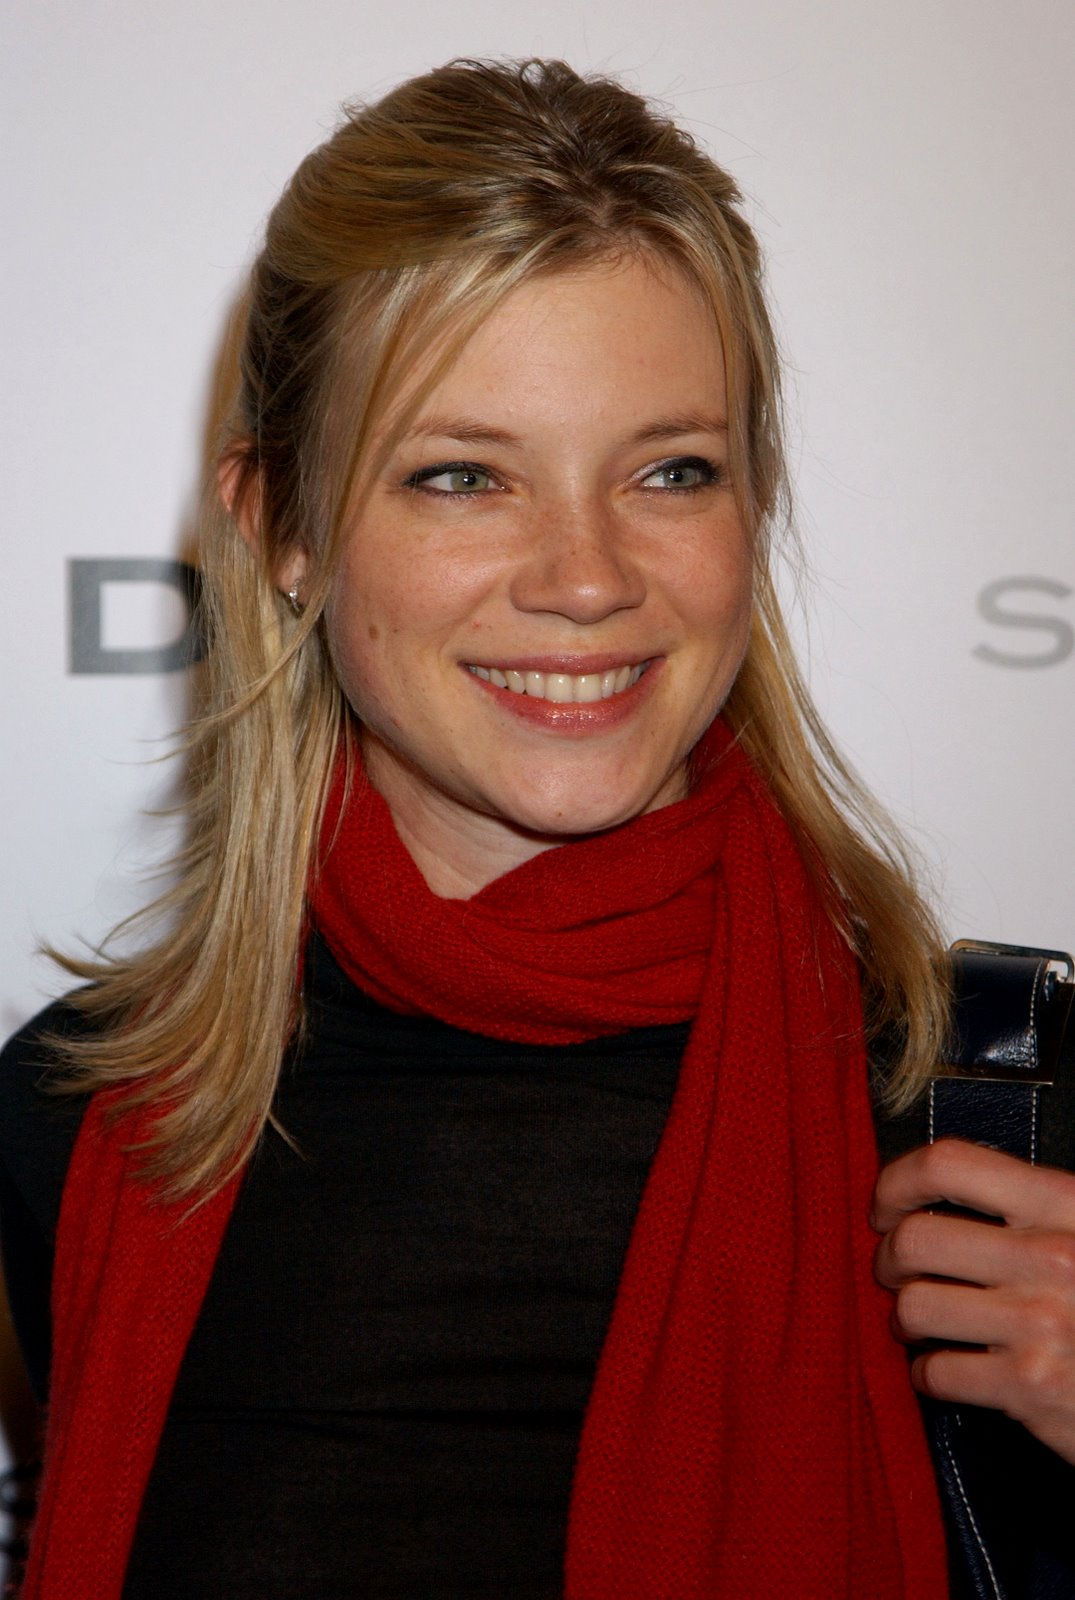 Amy Smart Hot Images free download hd amy smart hot hd wallpapers amy smart hd